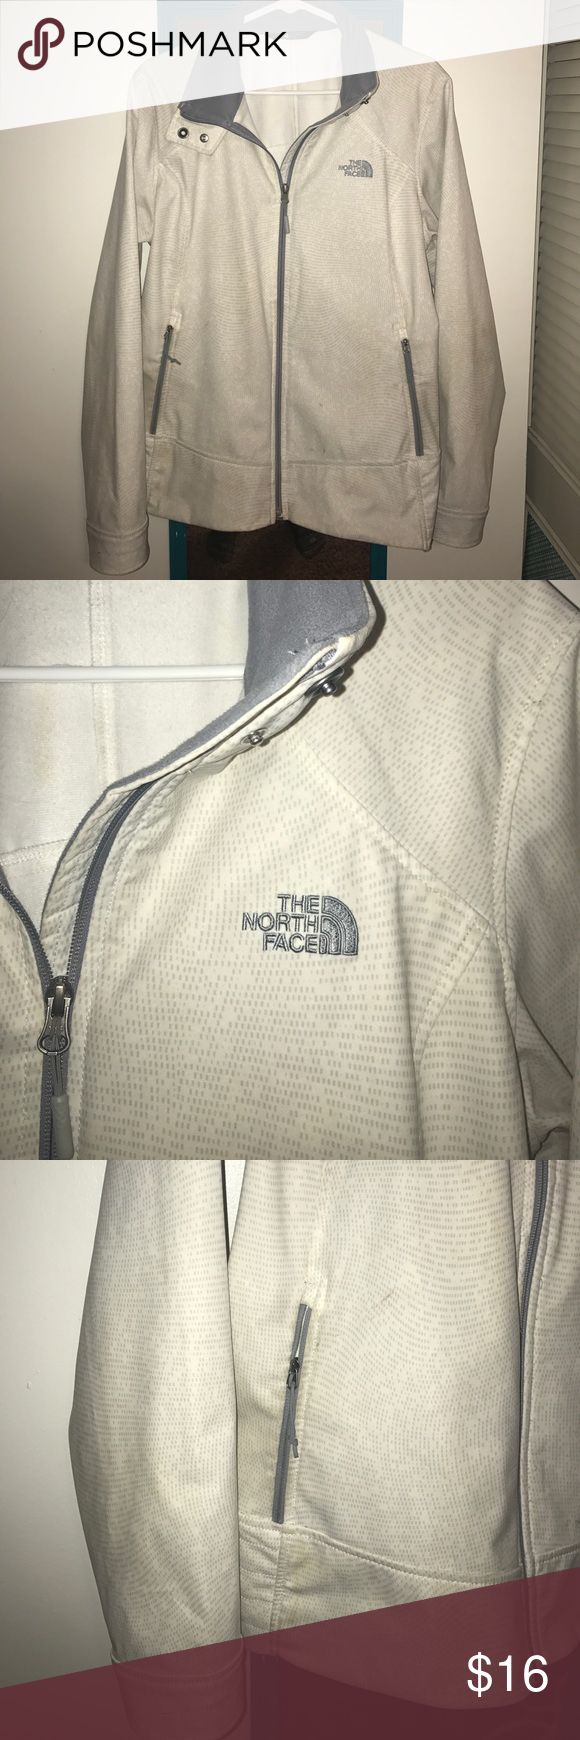 The North Face Women's Rain Jacket This rain jacket by The North Face features two front pockets and gray accents on sleeve and collar. Minor wear & price reflects! The North Face Jackets & Coats